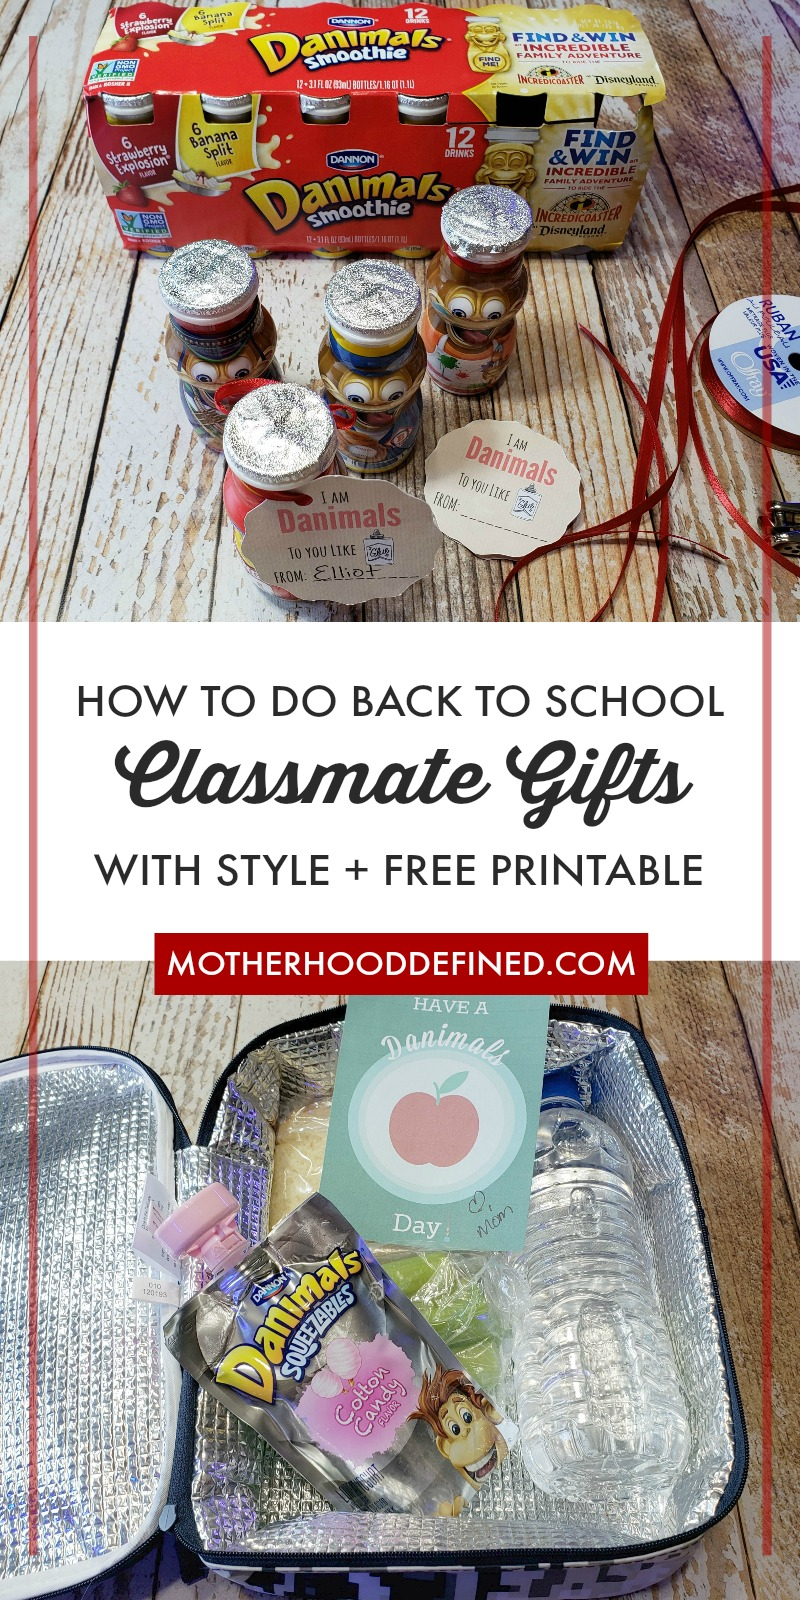 How to do Back to School Classmate Gifts with Style + Free Printables #SnackToSchool #CollectiveBias